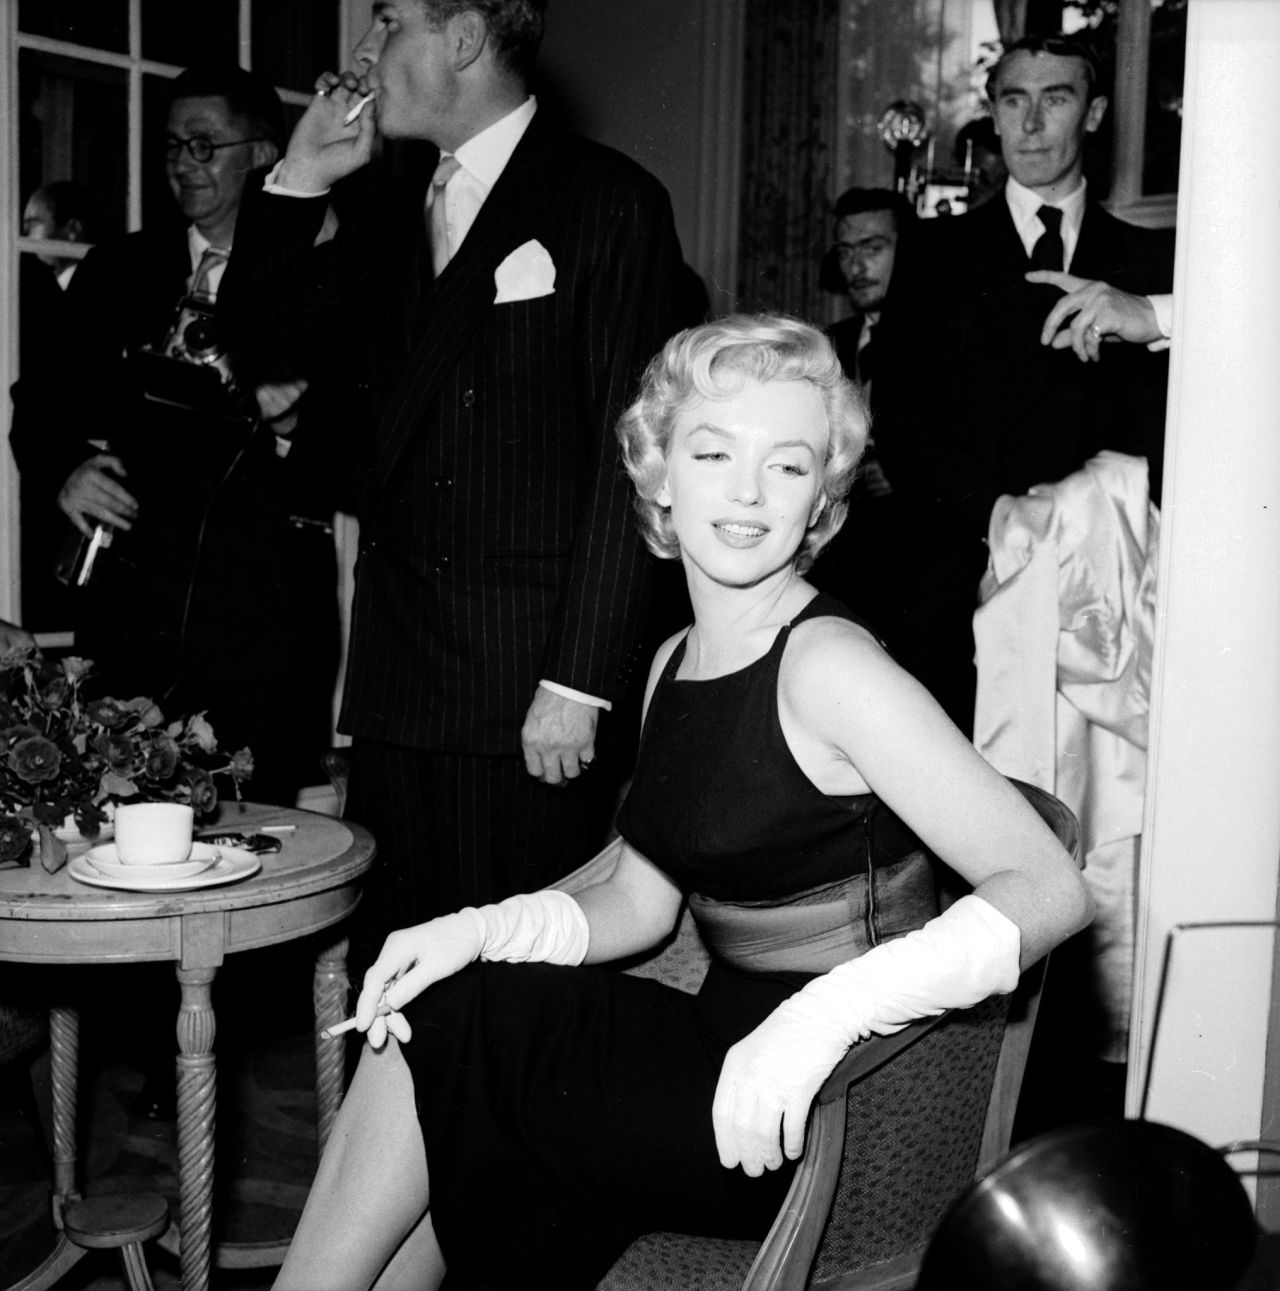 Marilyn Monroe at a press conference in England, 1956.